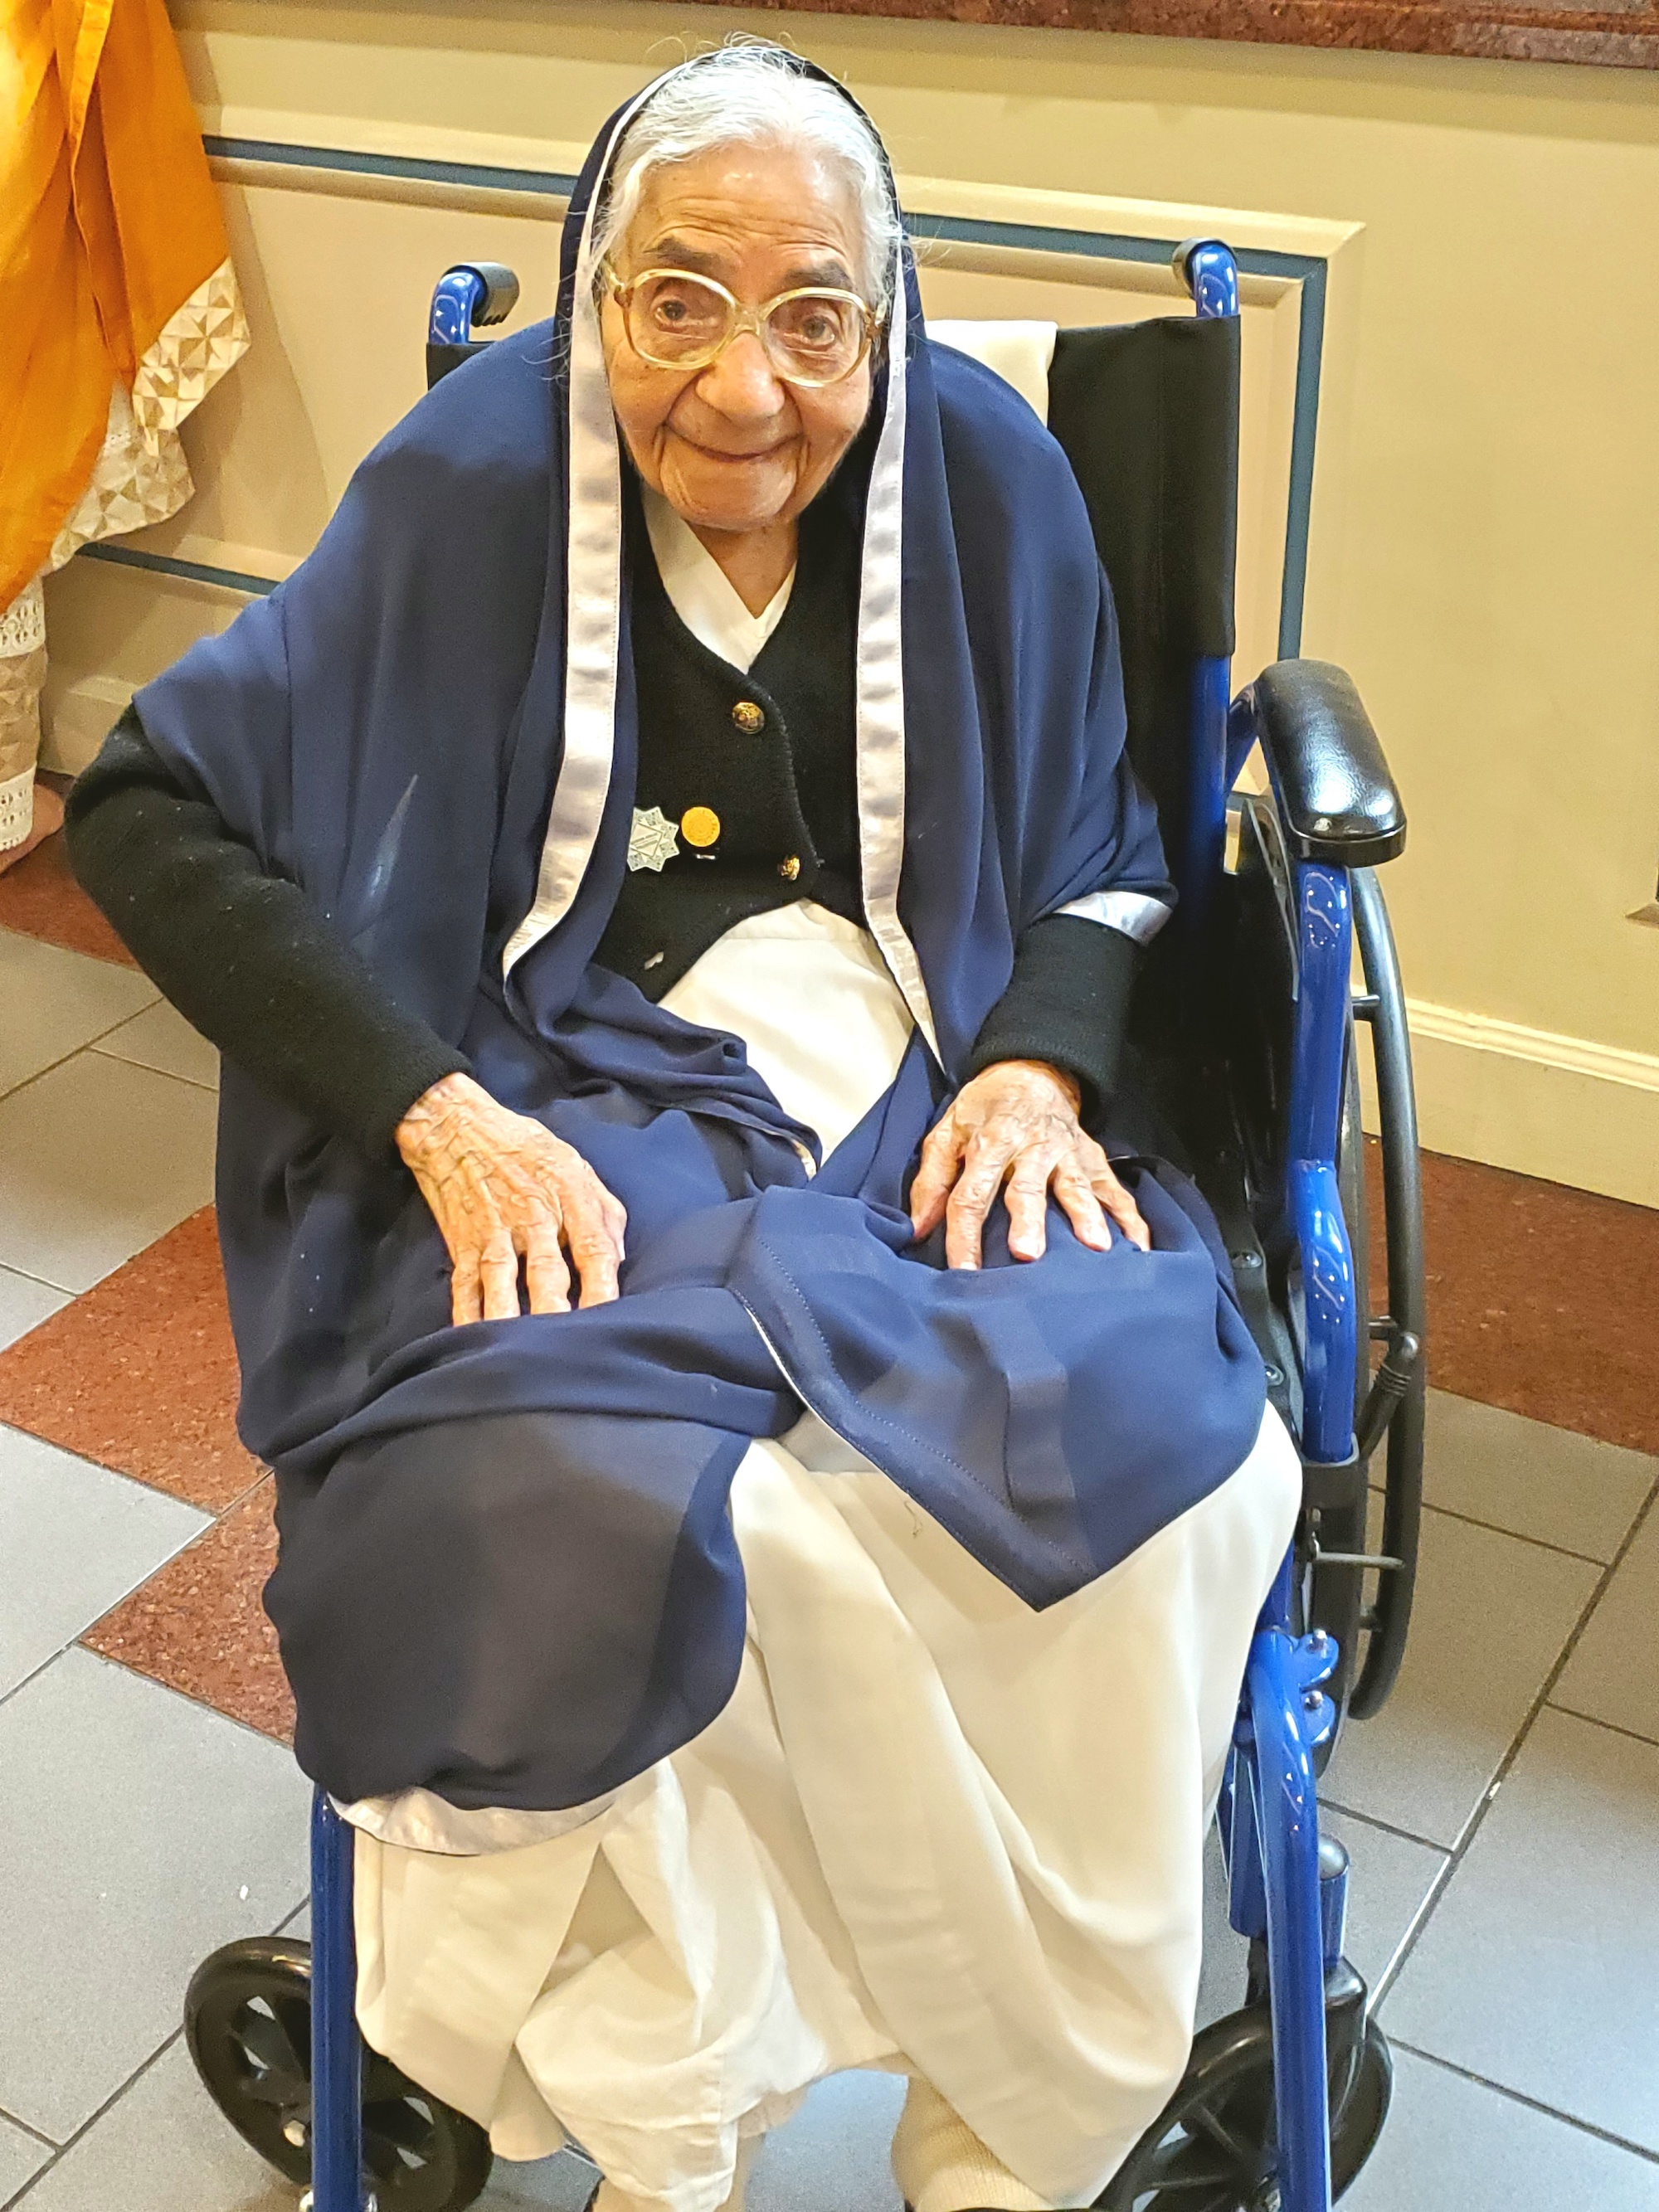 Fatima Jamani (Maaji) in Atlanta, who still performs voluntary duties at 105 years of age.